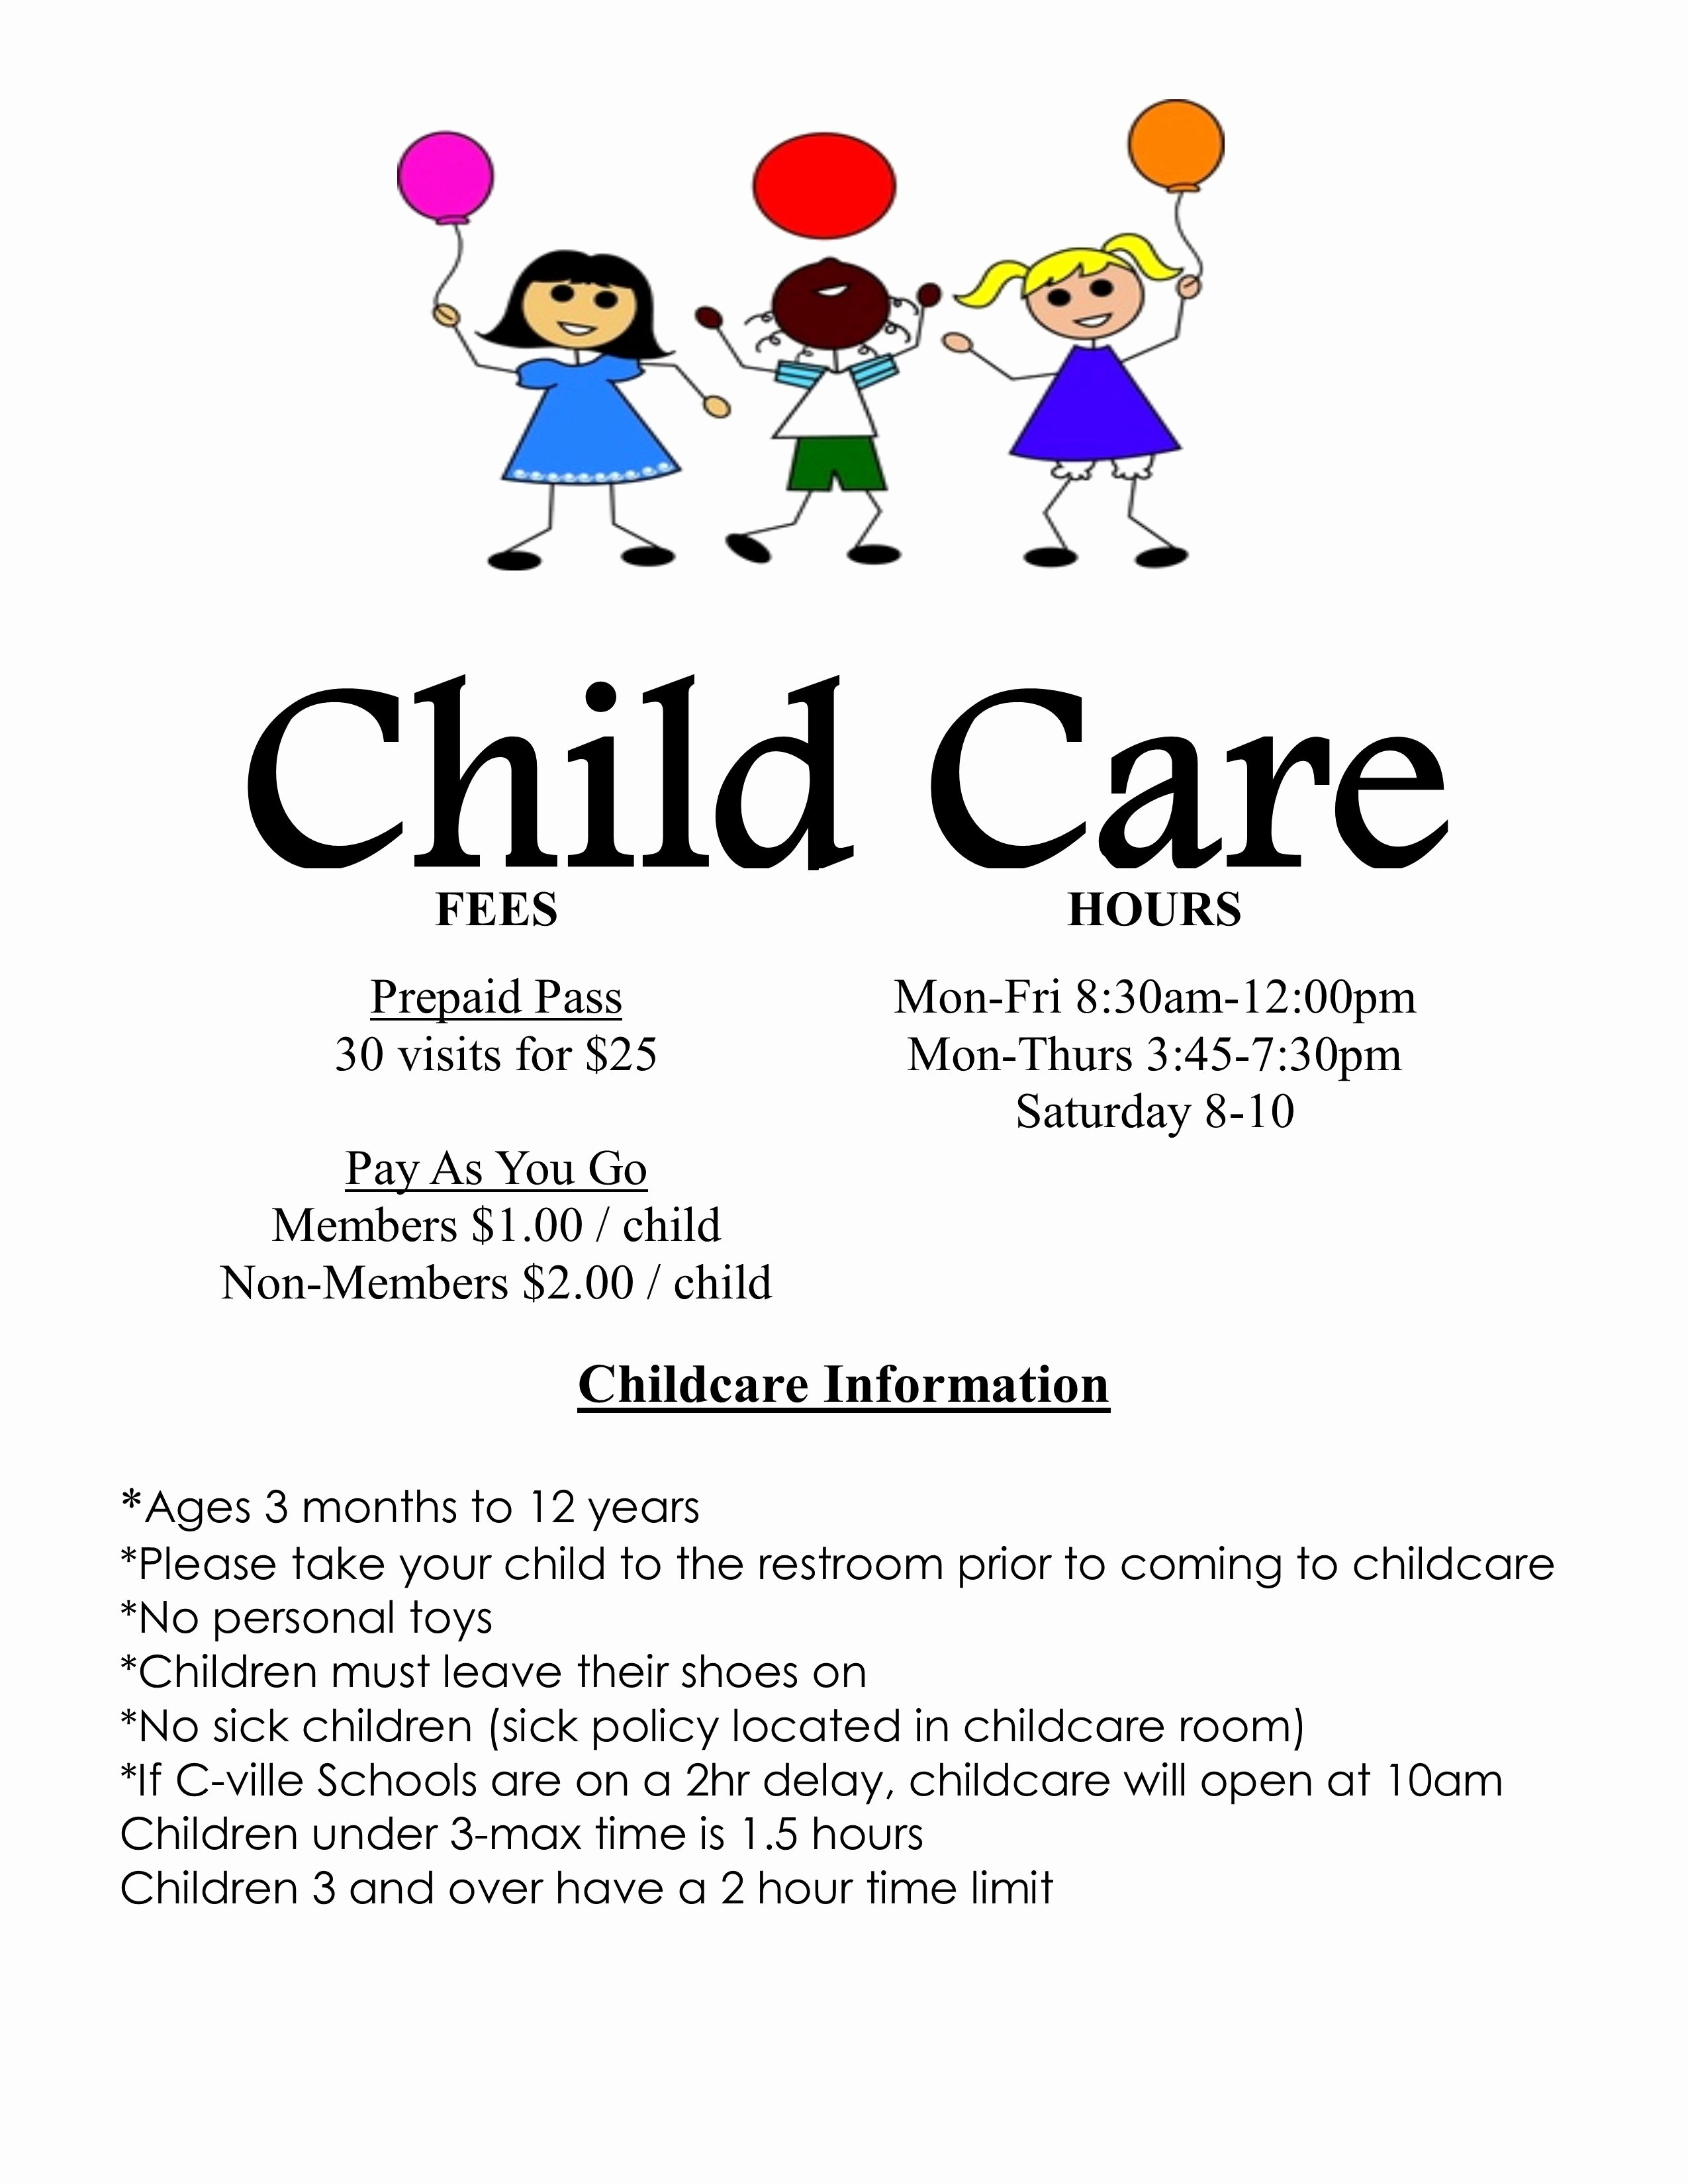 Child Care Flyer Templates Unique Child Care Flyers Examples